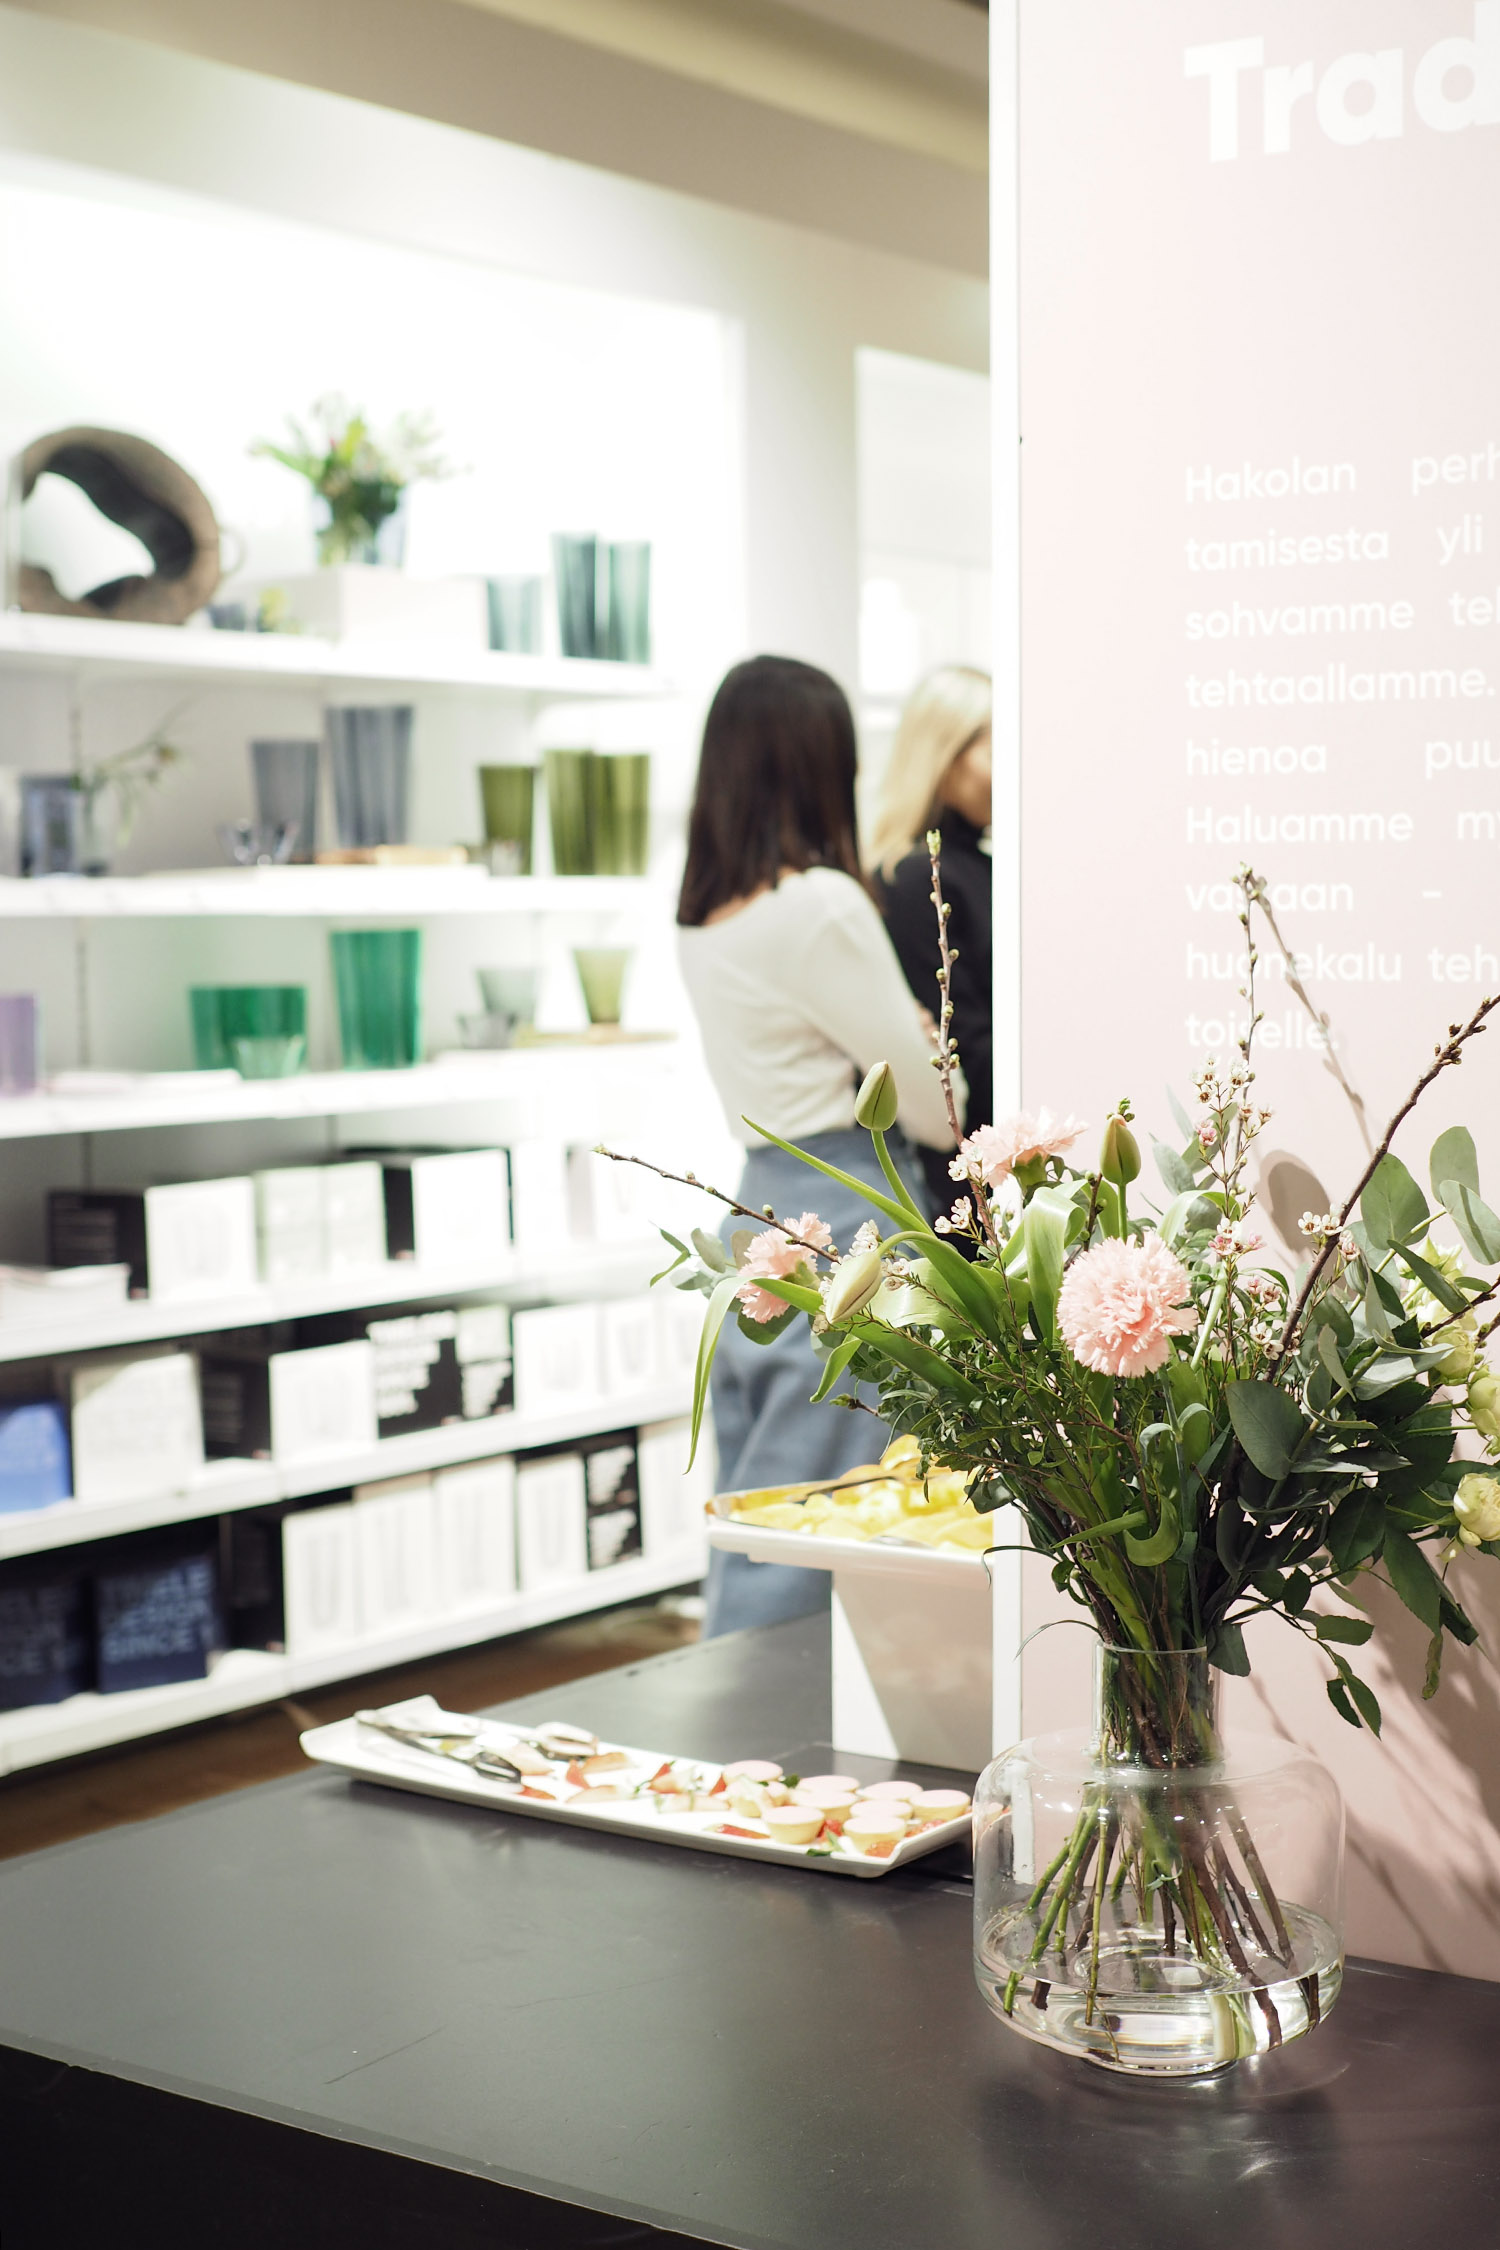 Char and the city, Hakola pop-up shop, Stockmann, Muita Ihania-kranssityöpaja